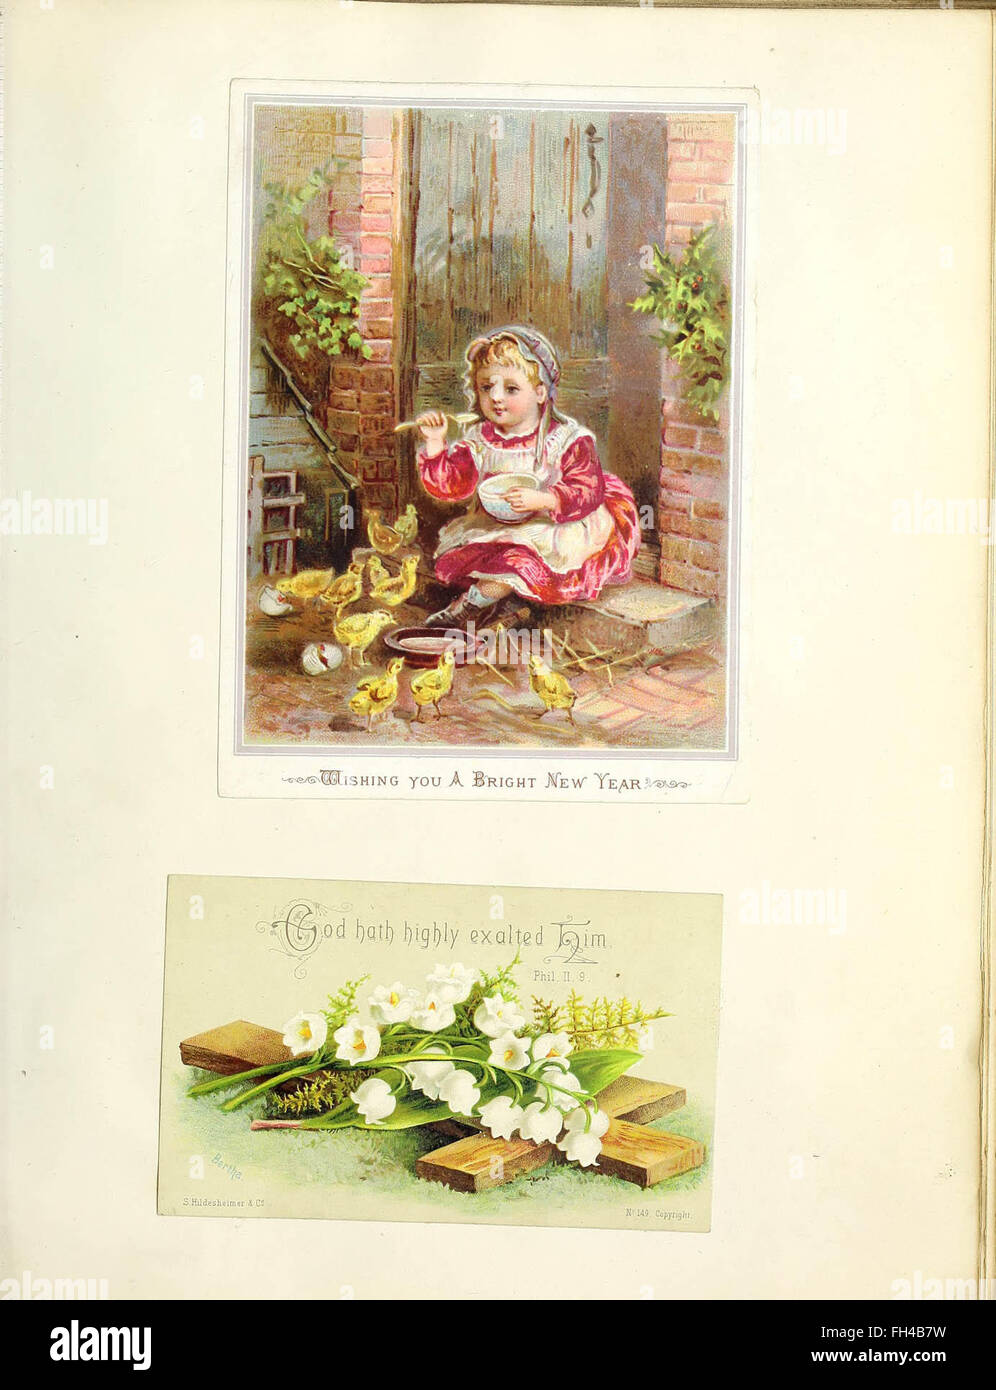 Scrapbook of victorian greeting cards stock photo 96597645 alamy scrapbook of victorian greeting cards m4hsunfo